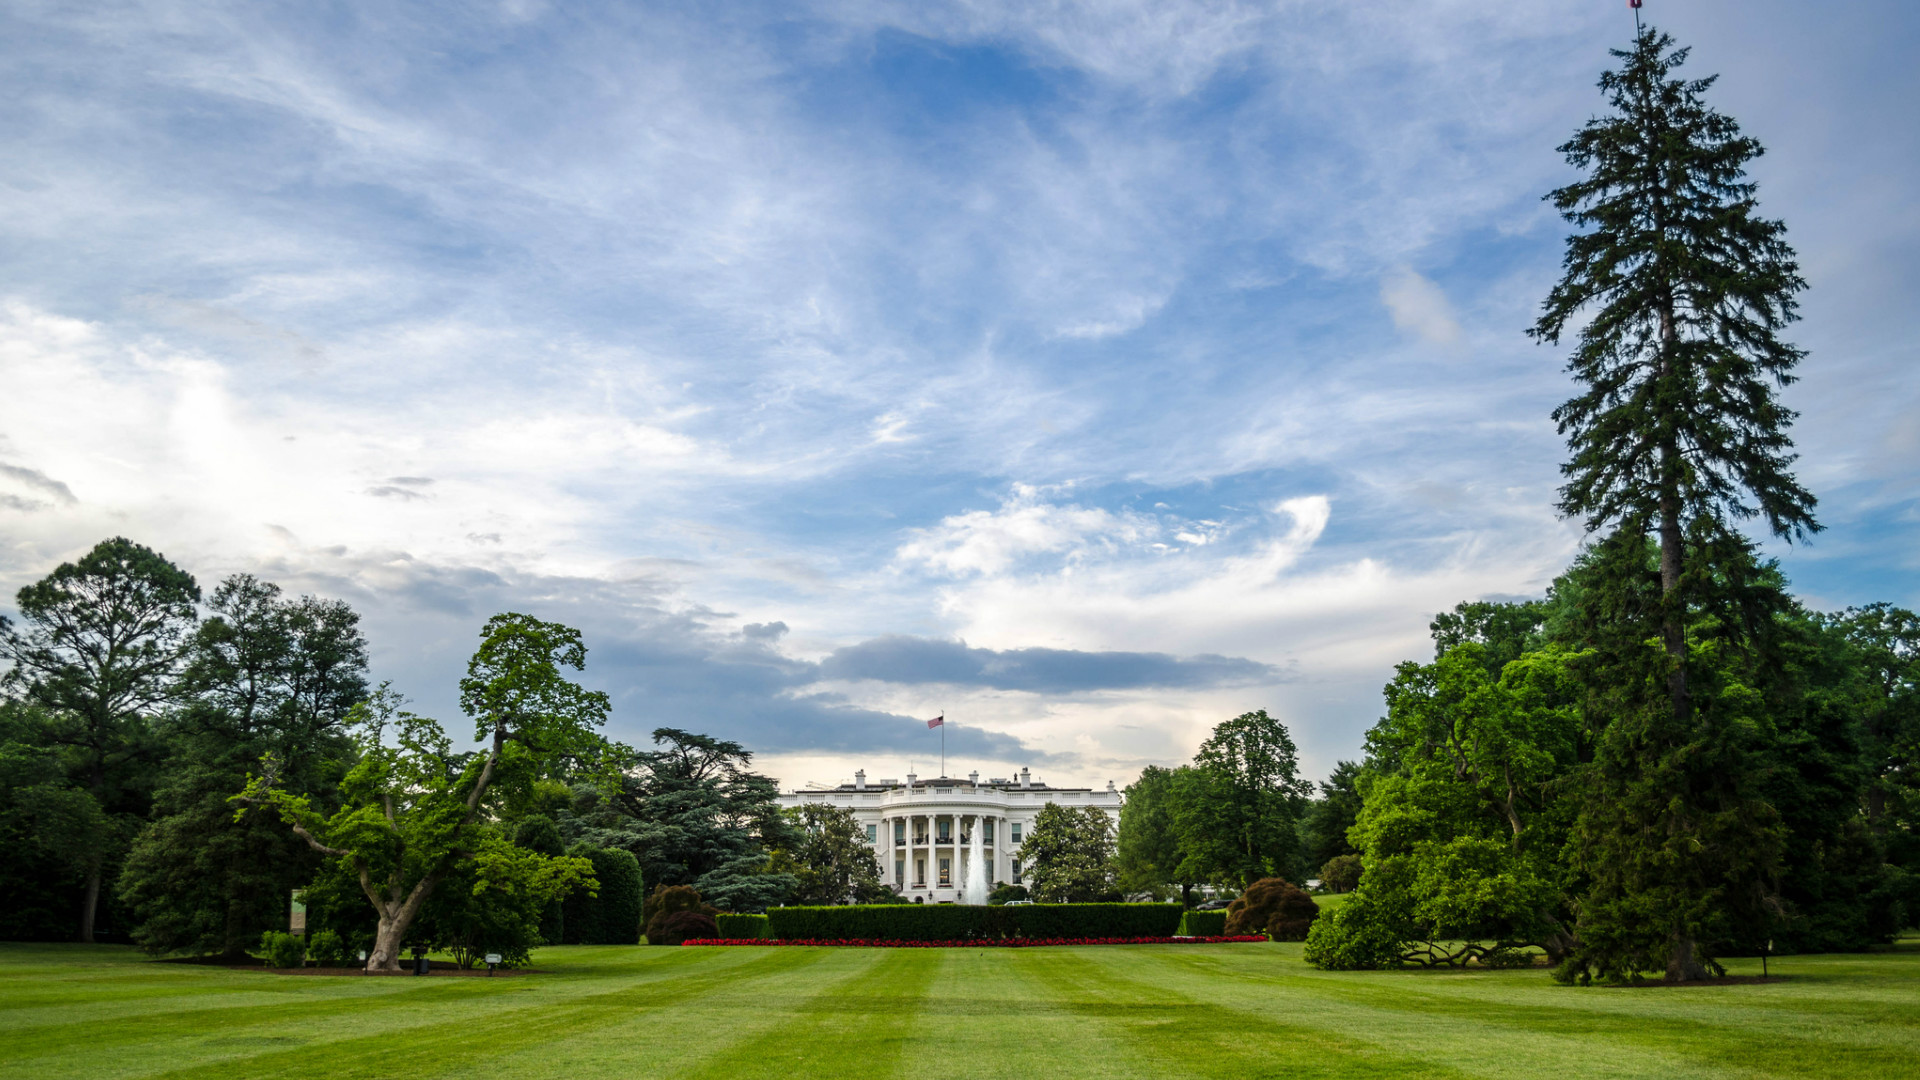 6 fun facts about presidents and trees